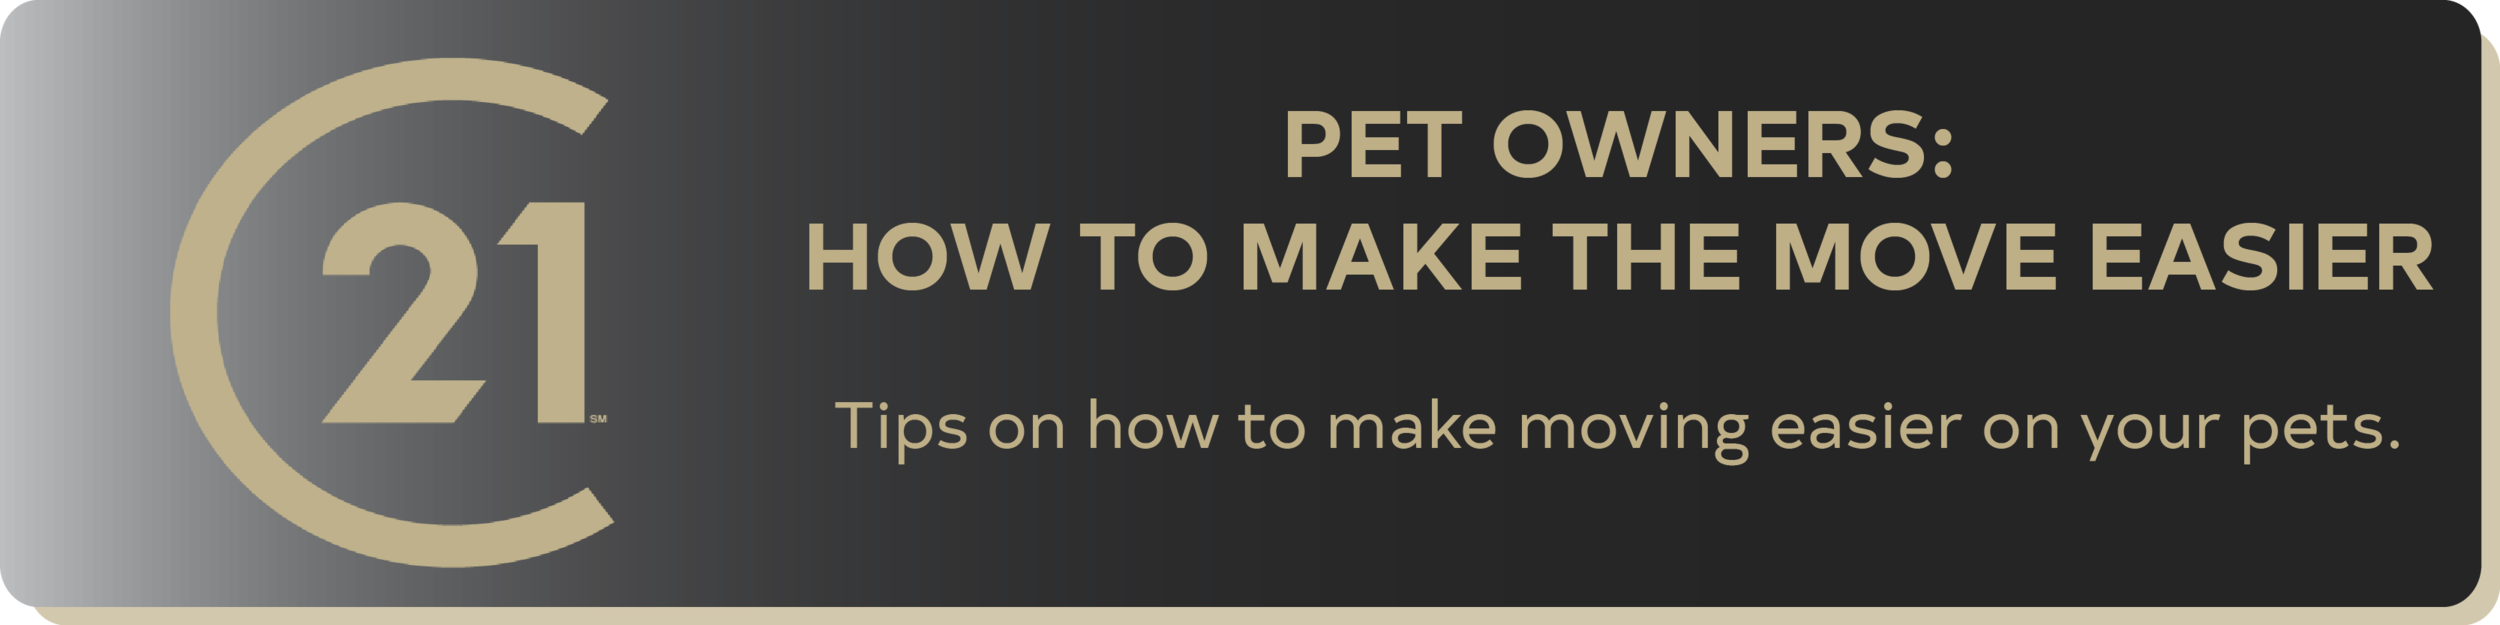 tips for pet owners.png